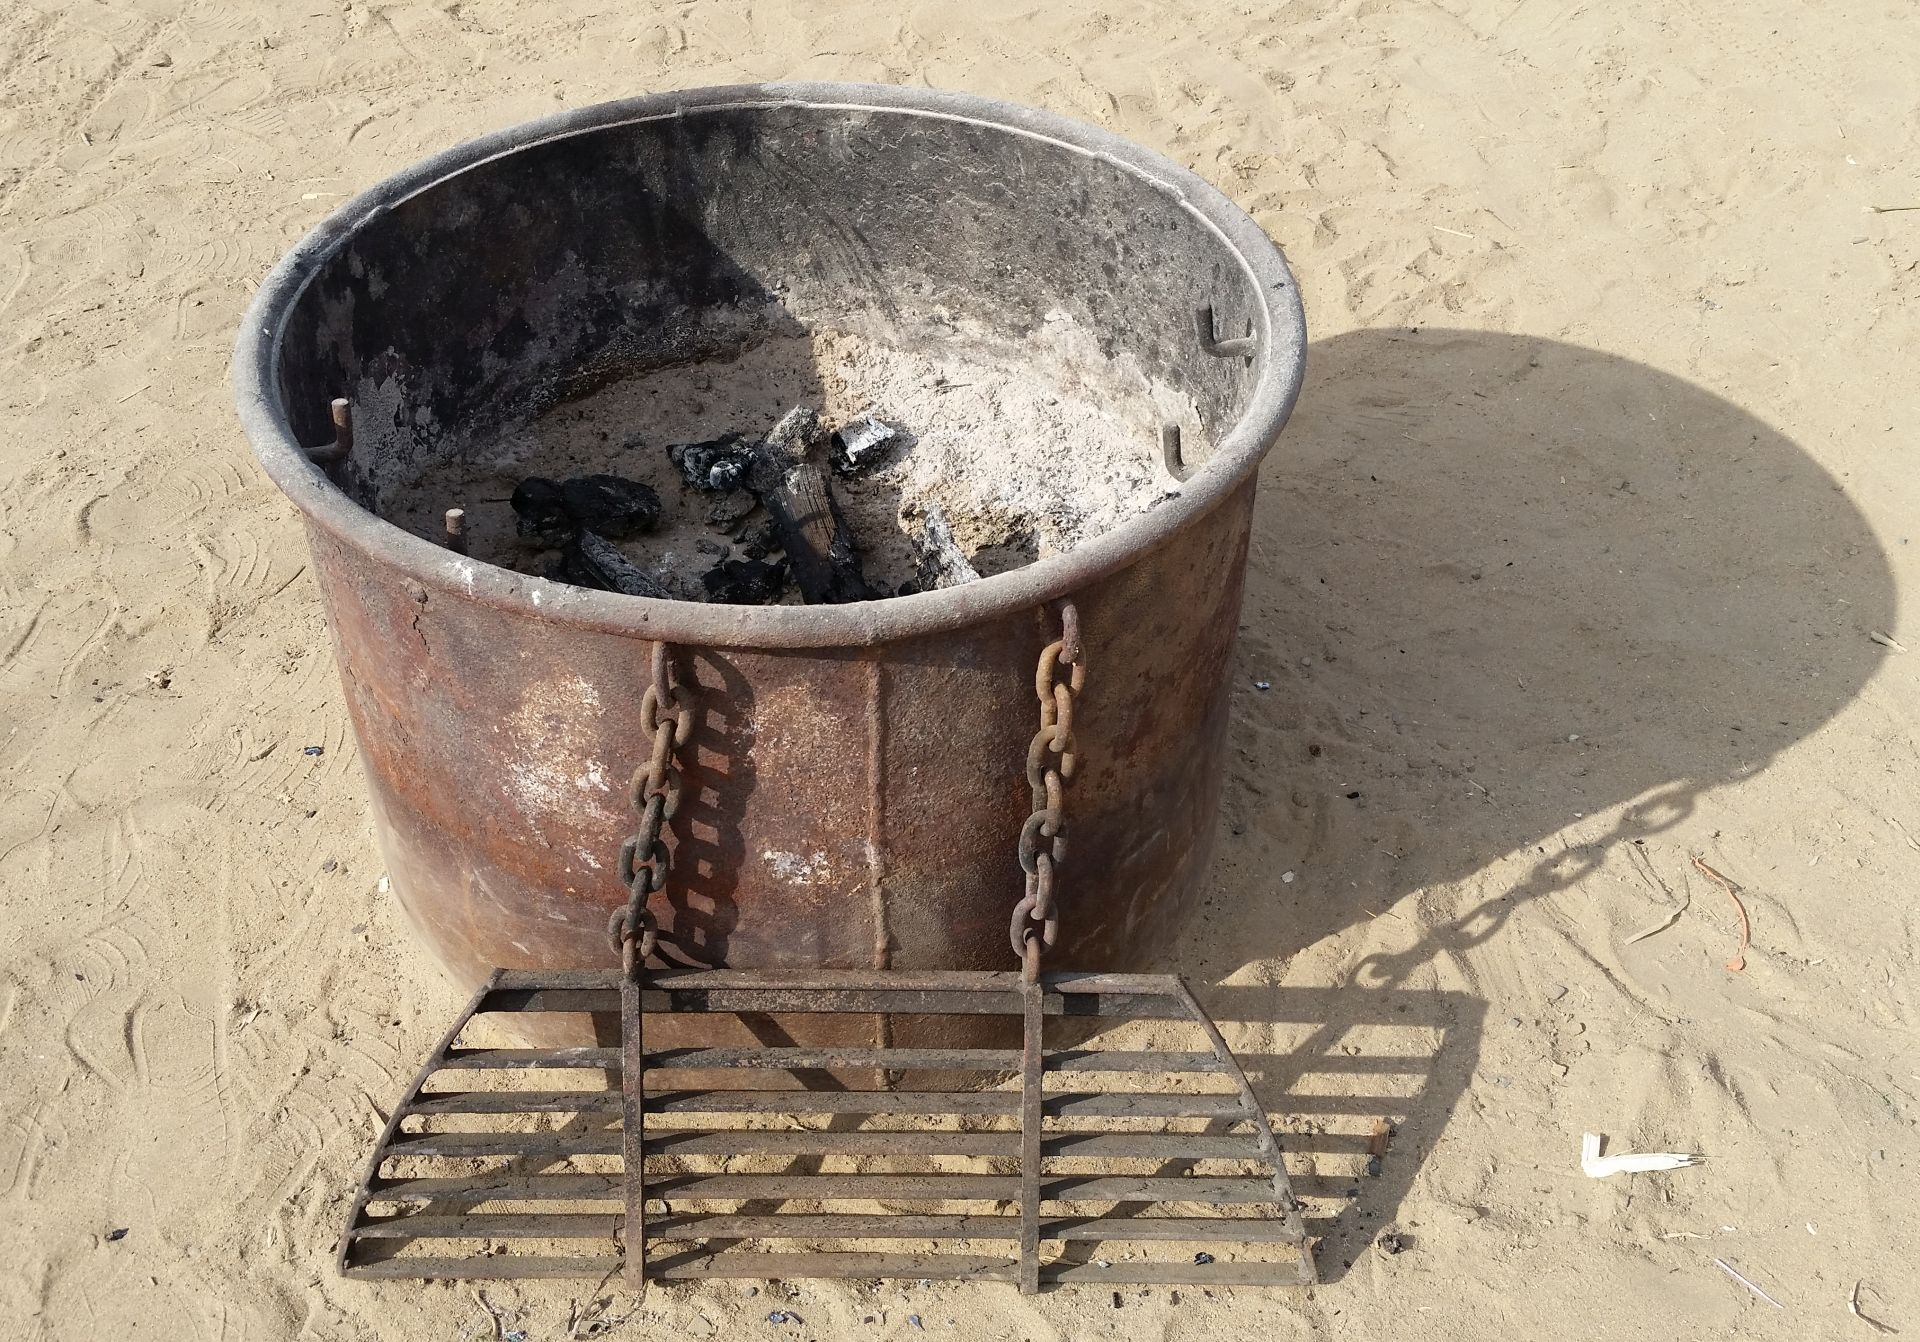 Intact Fire Ring/Bucket